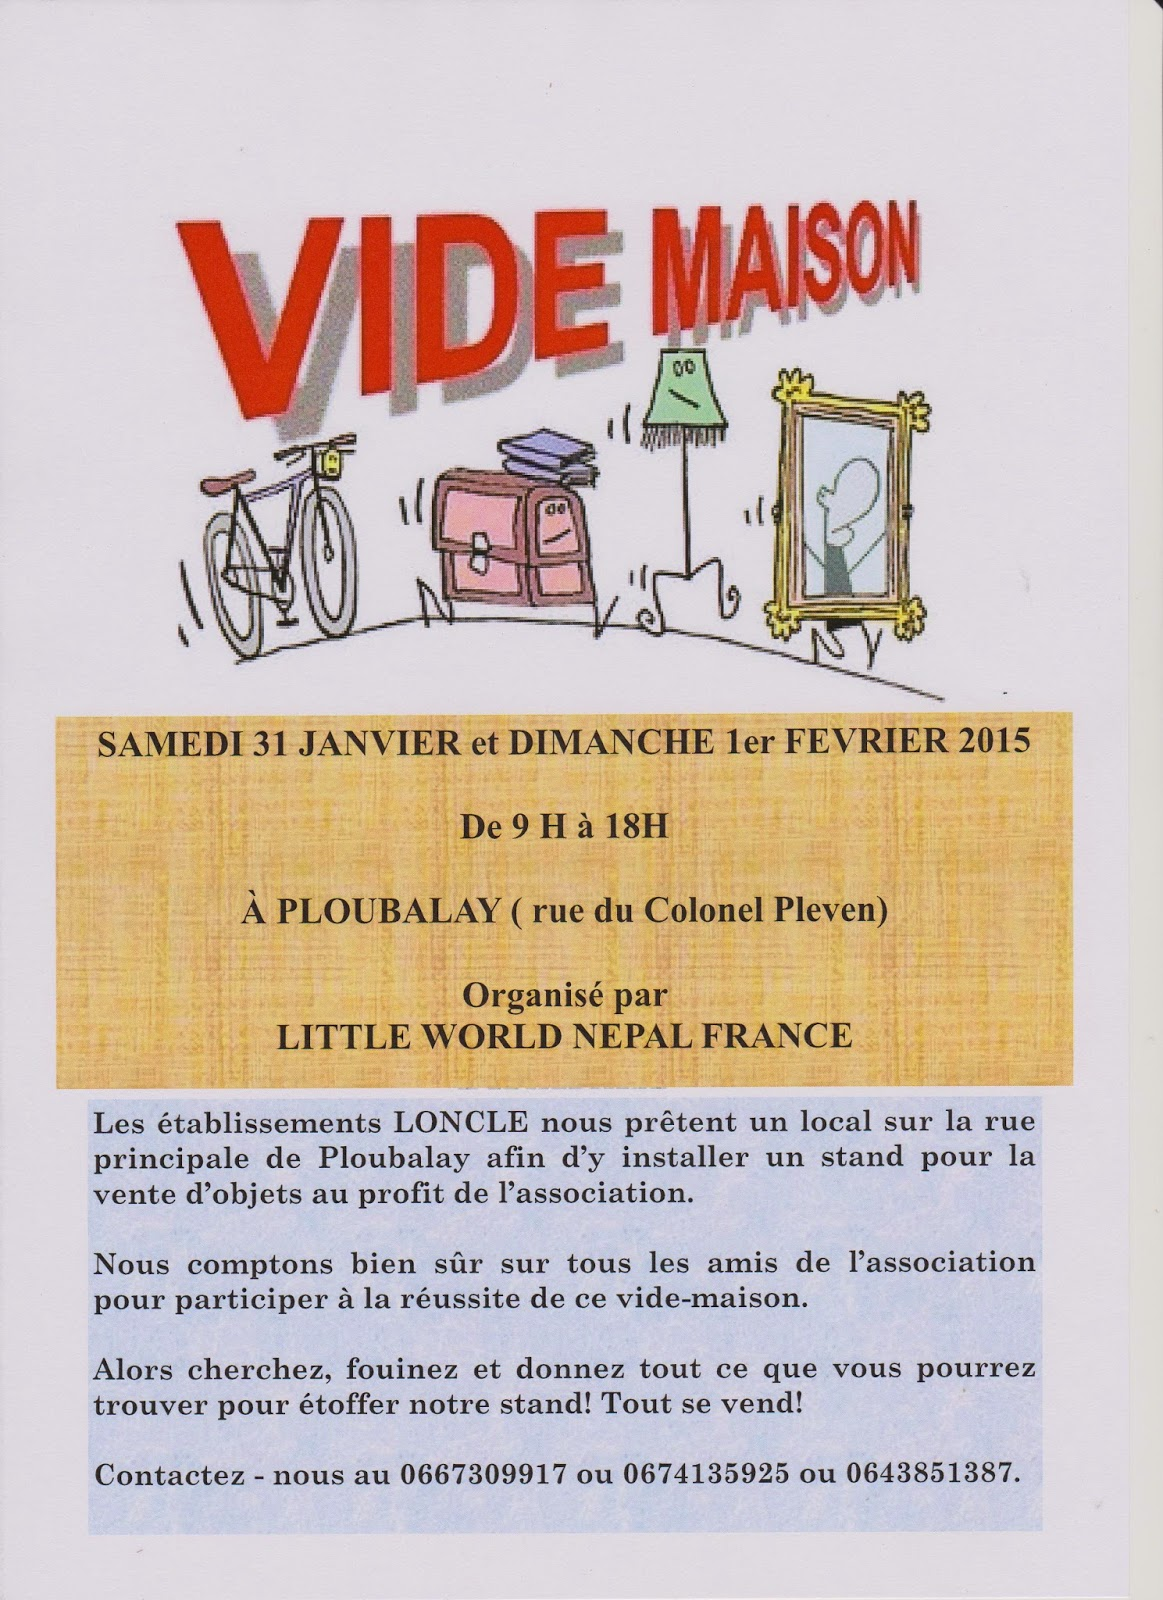 Modele Affiche Pour Vide Maison Little World Népal France Vide Maison A Ploubalay Ce Week End